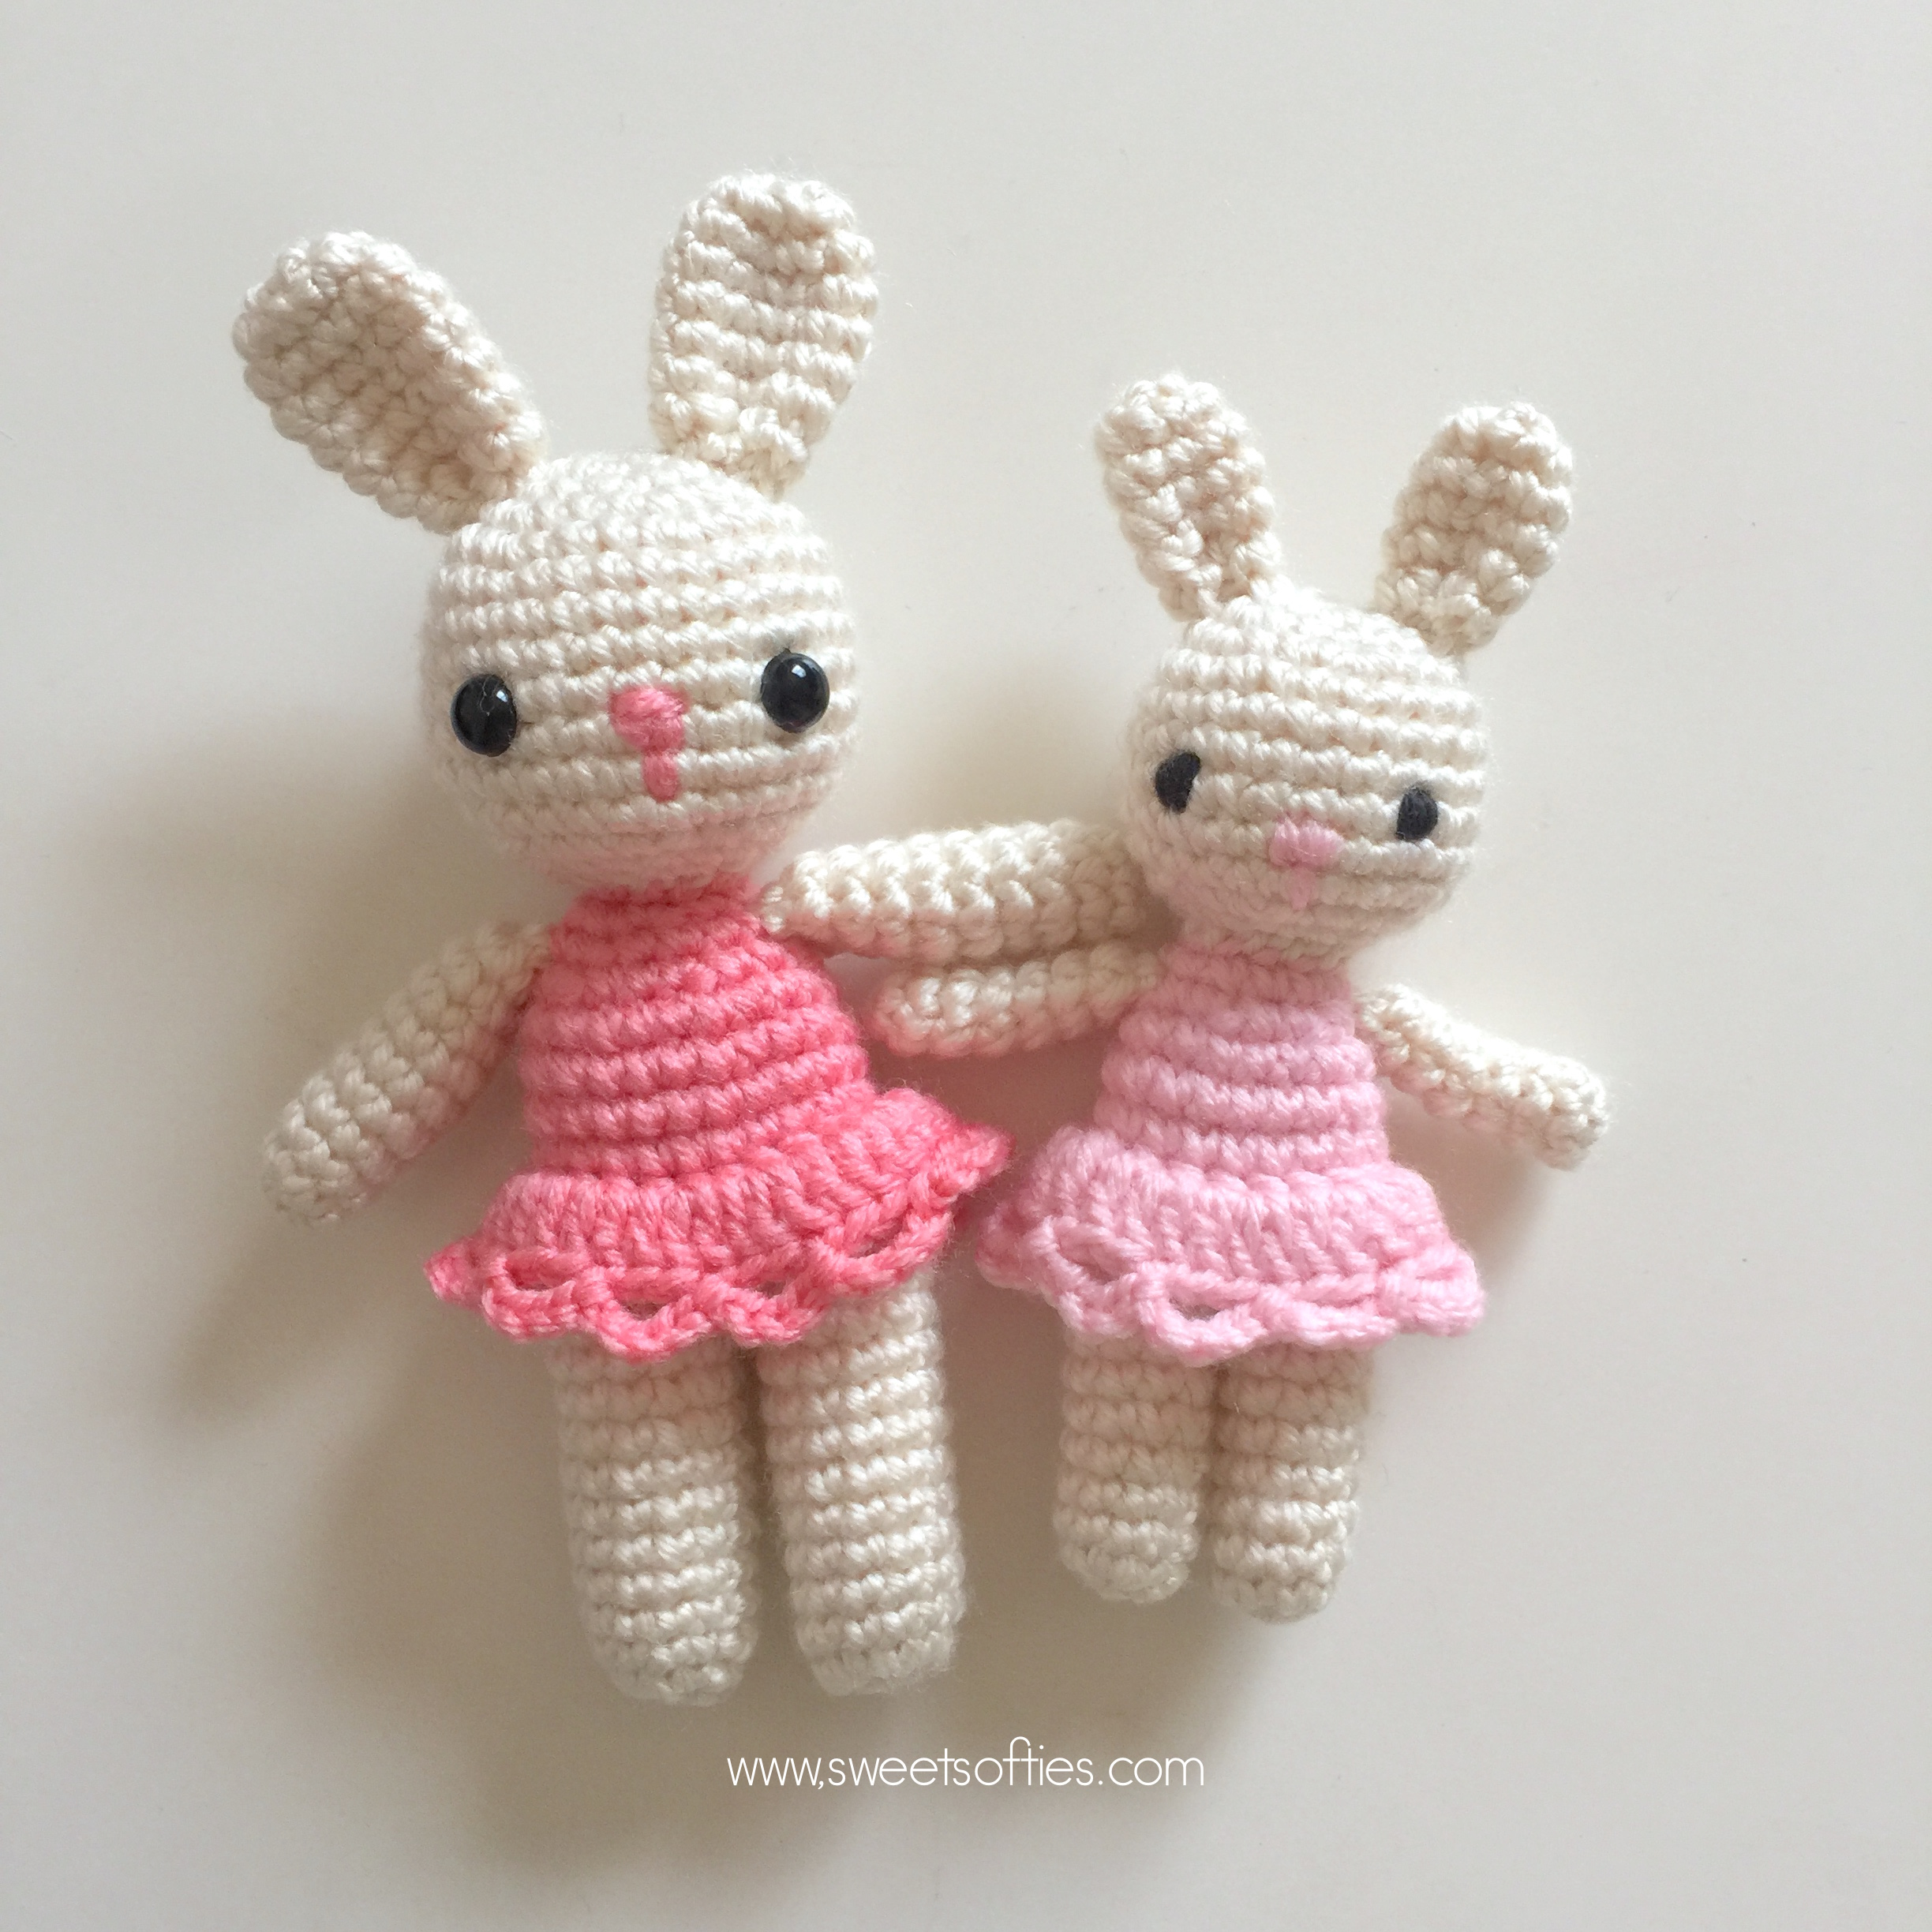 Bunnies in Dresses - Amigurumi Crochet Rabbit Doll Gifts for Sisters